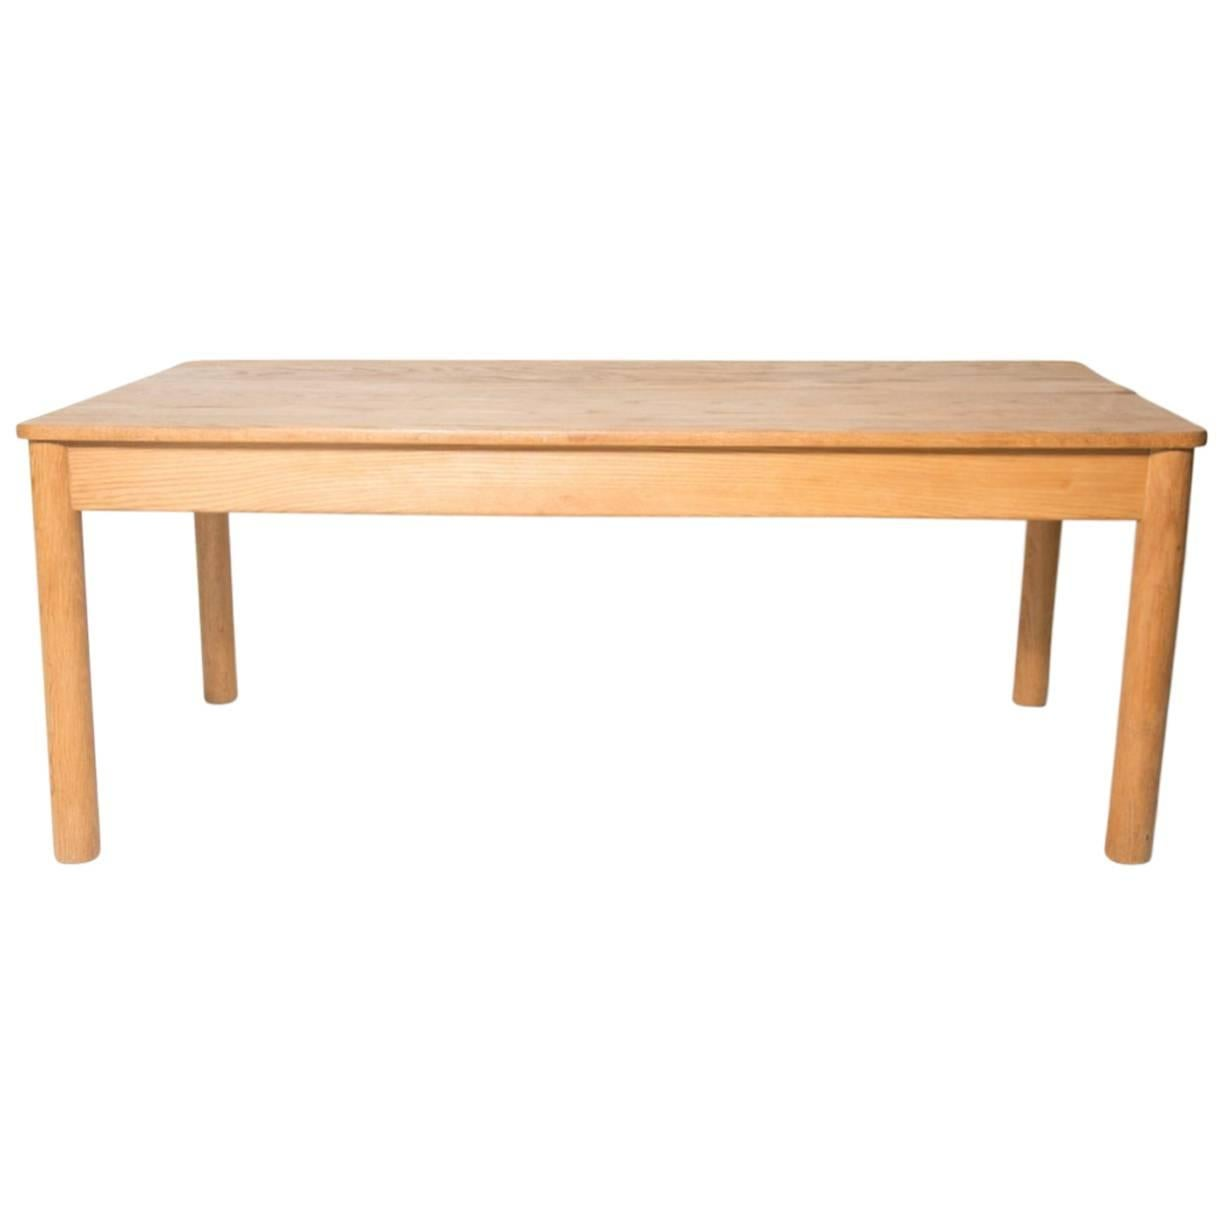 Børge Mogensen Model 5352 Coffee Table for Fredericia